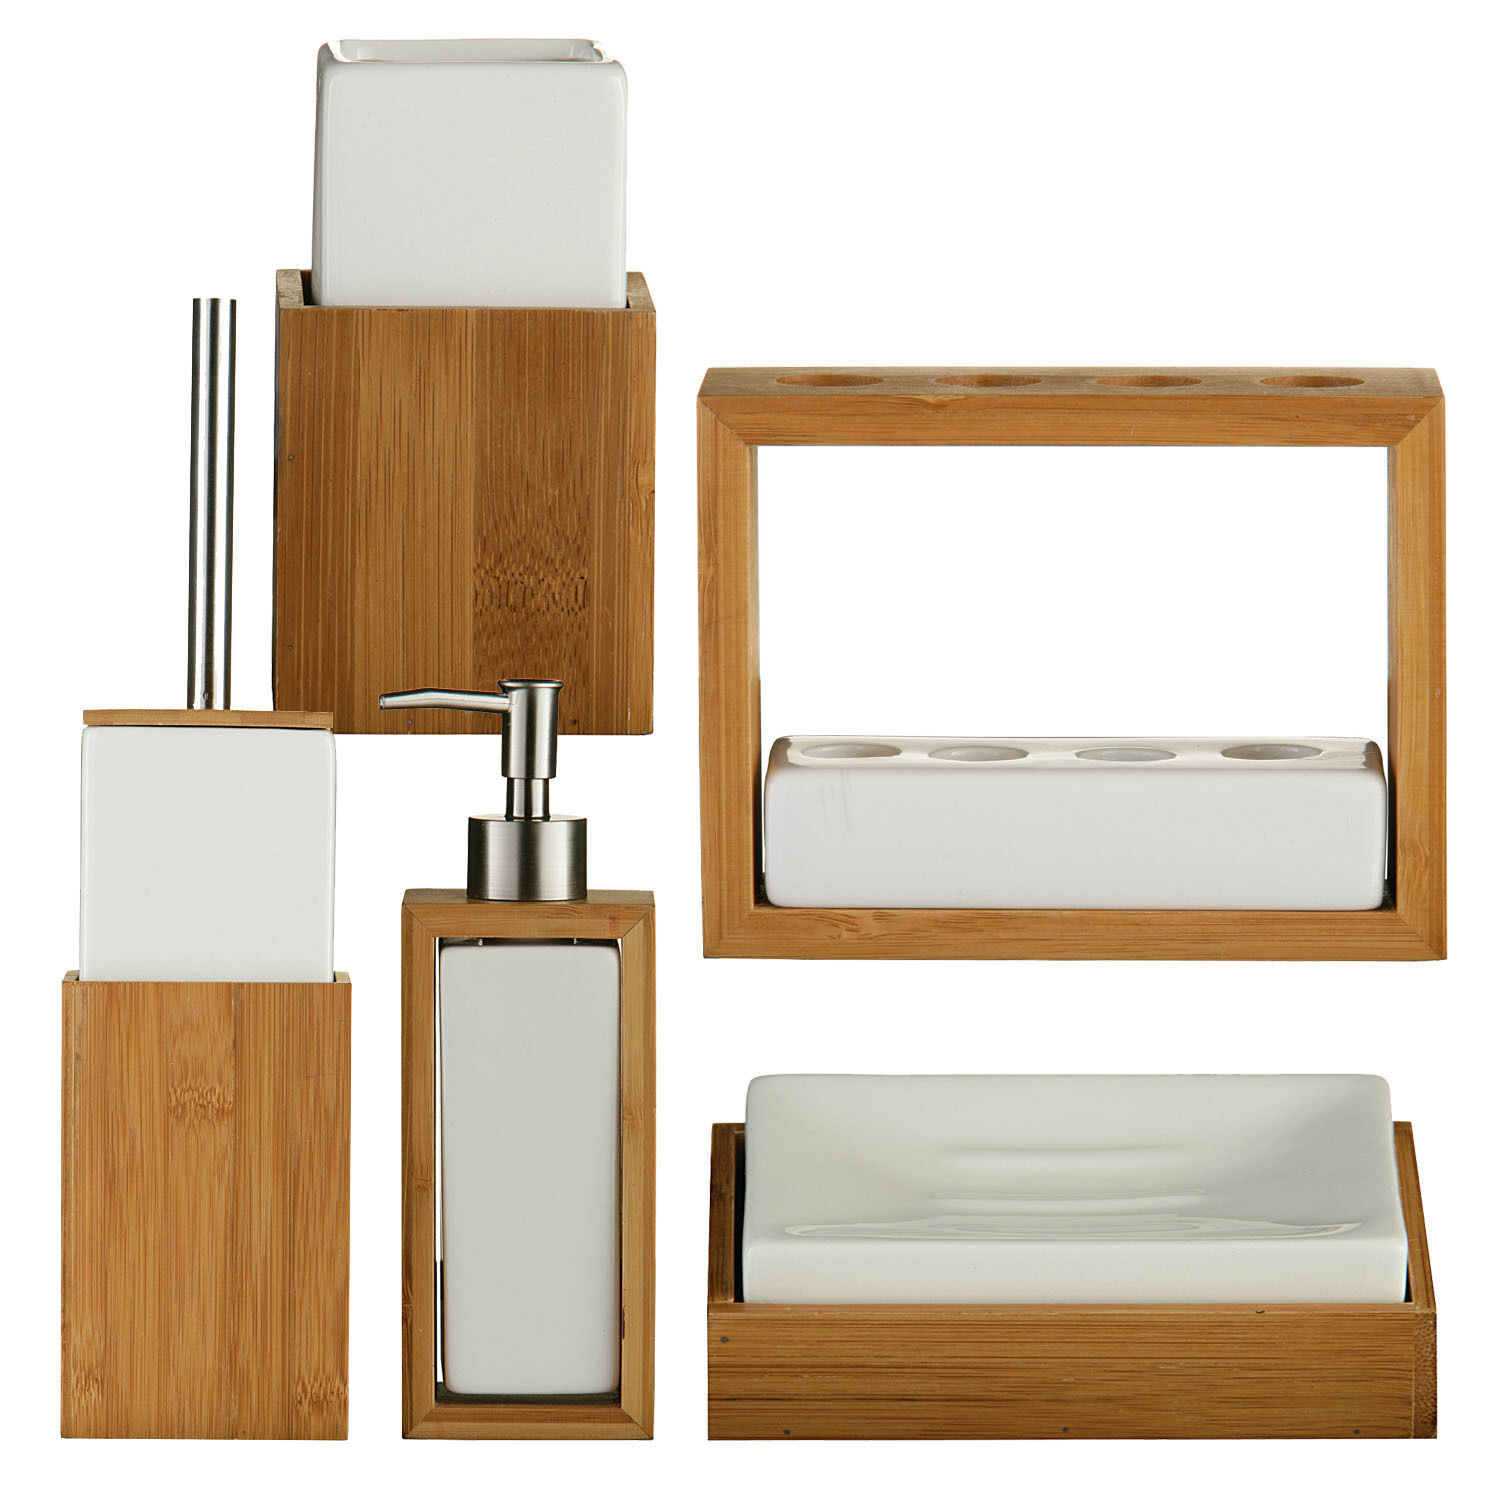 Black Bathroom Accessories Australia bamboo bathroom accessories | home design styles